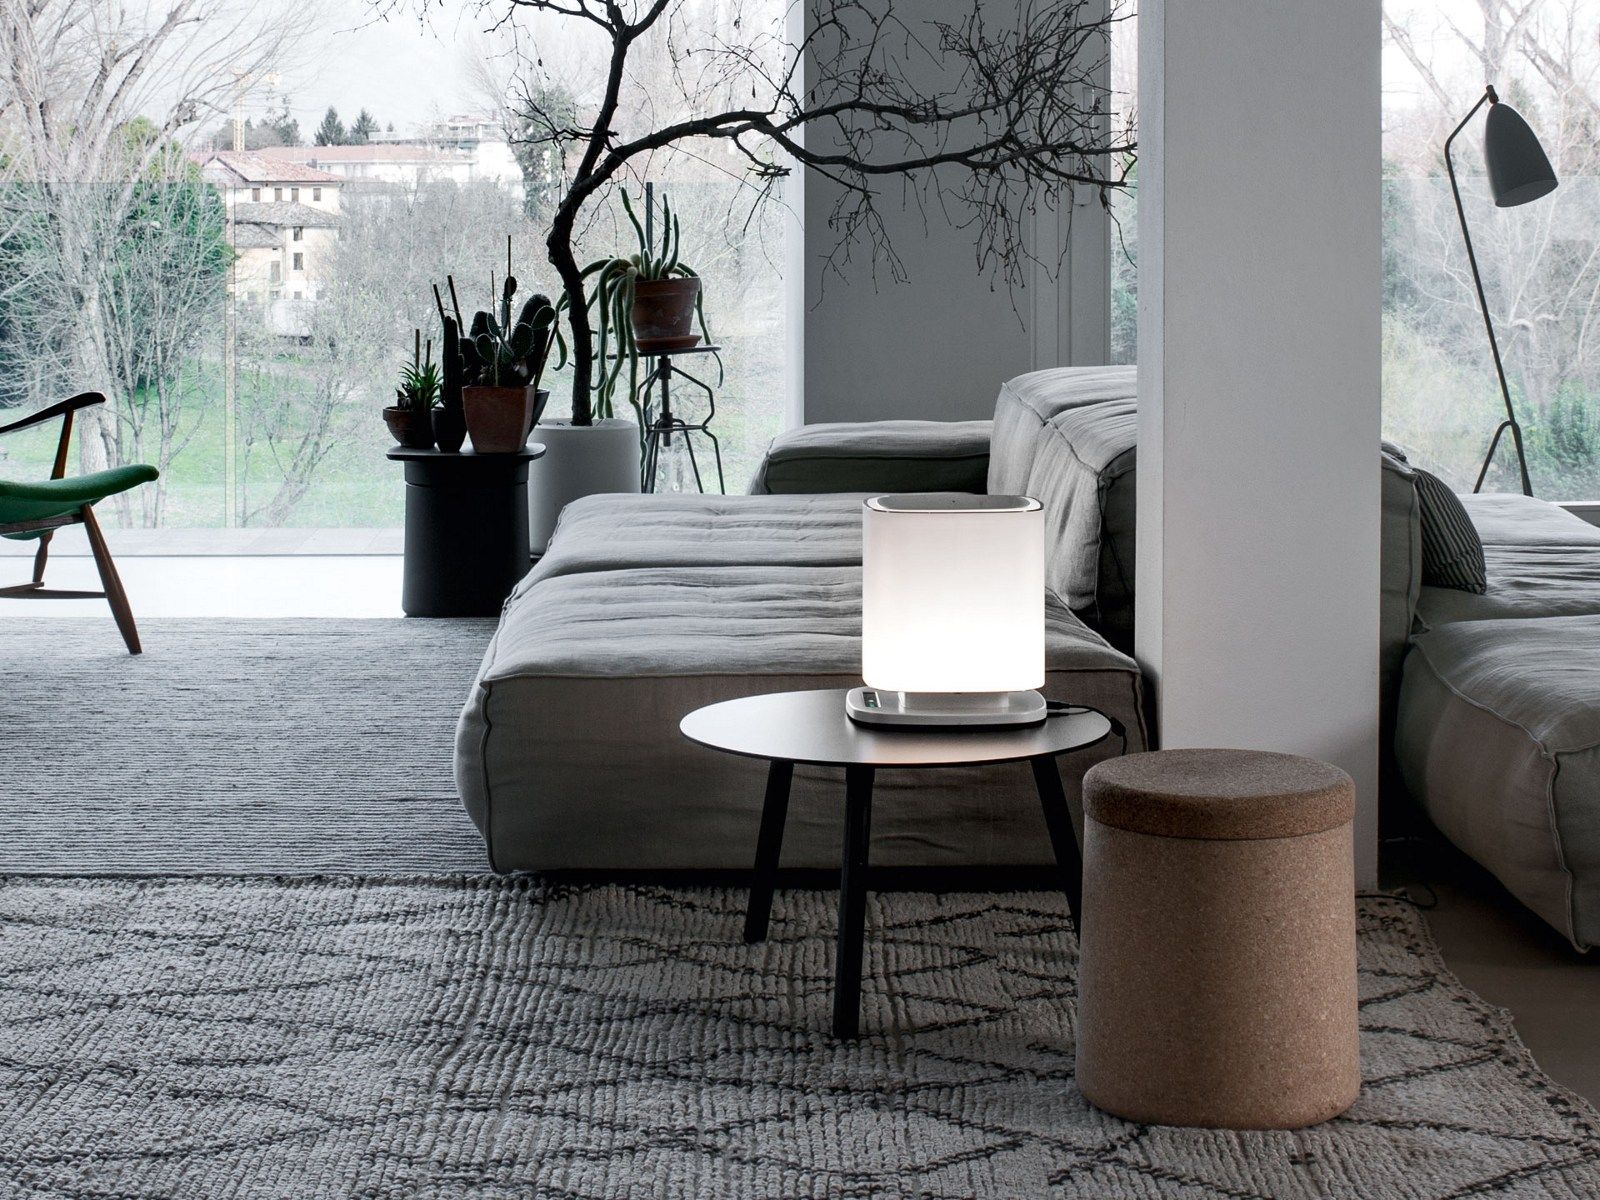 Falmec con bellaria ad archiproducts milano for Archiproducts shop